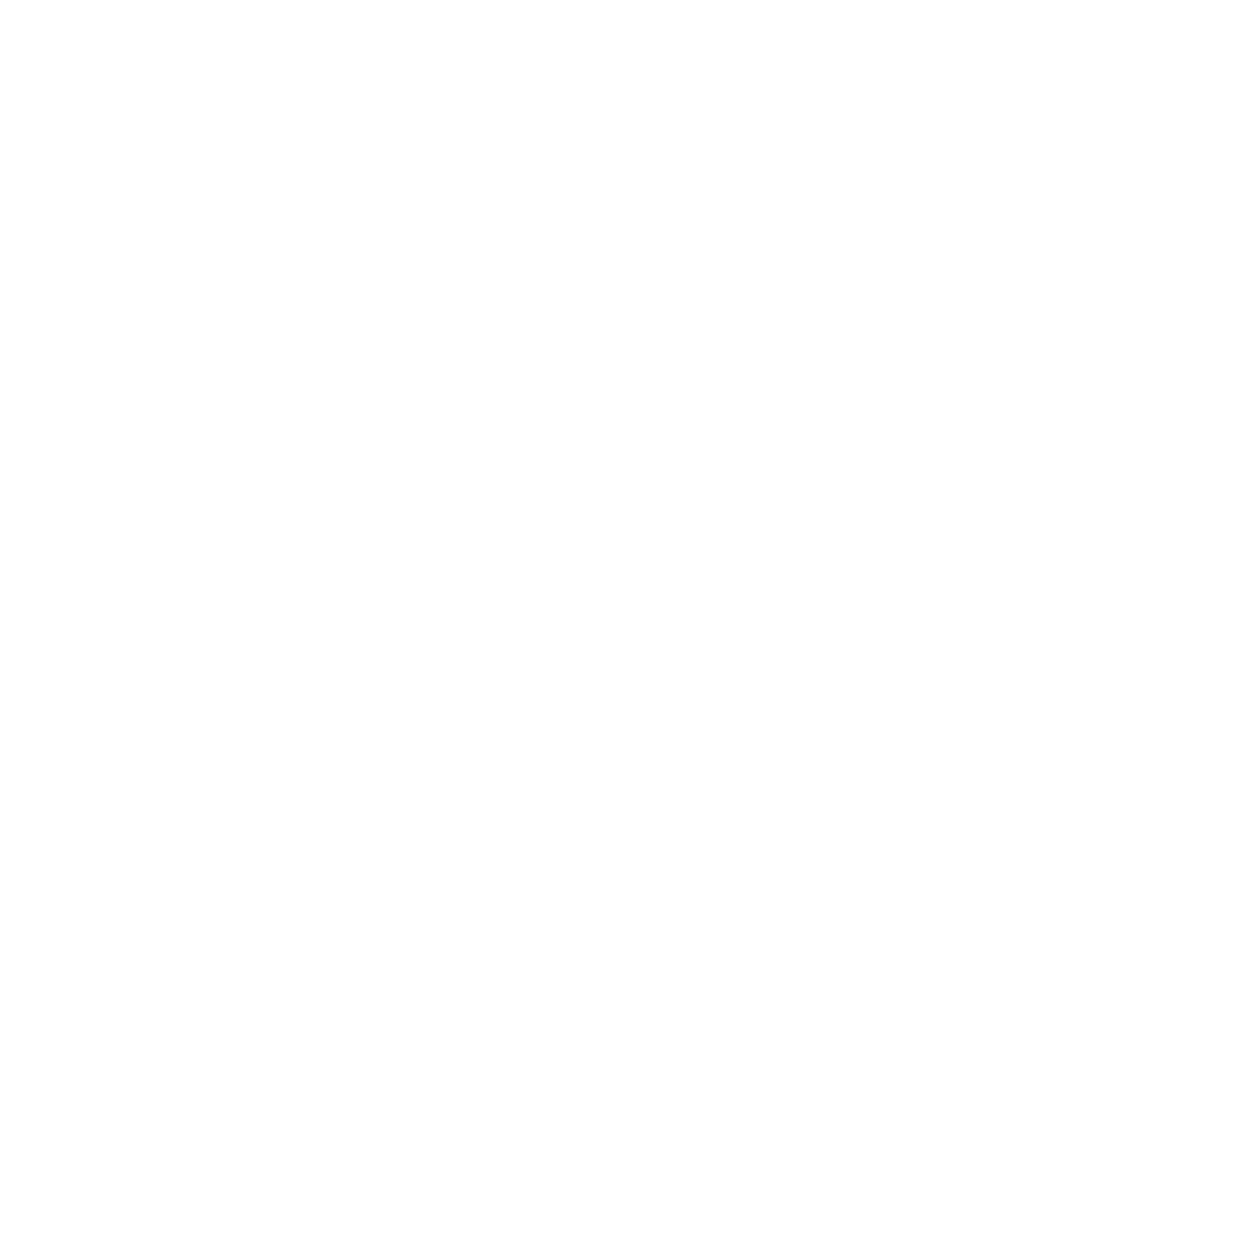 _AR STRETCH YOUR STORY